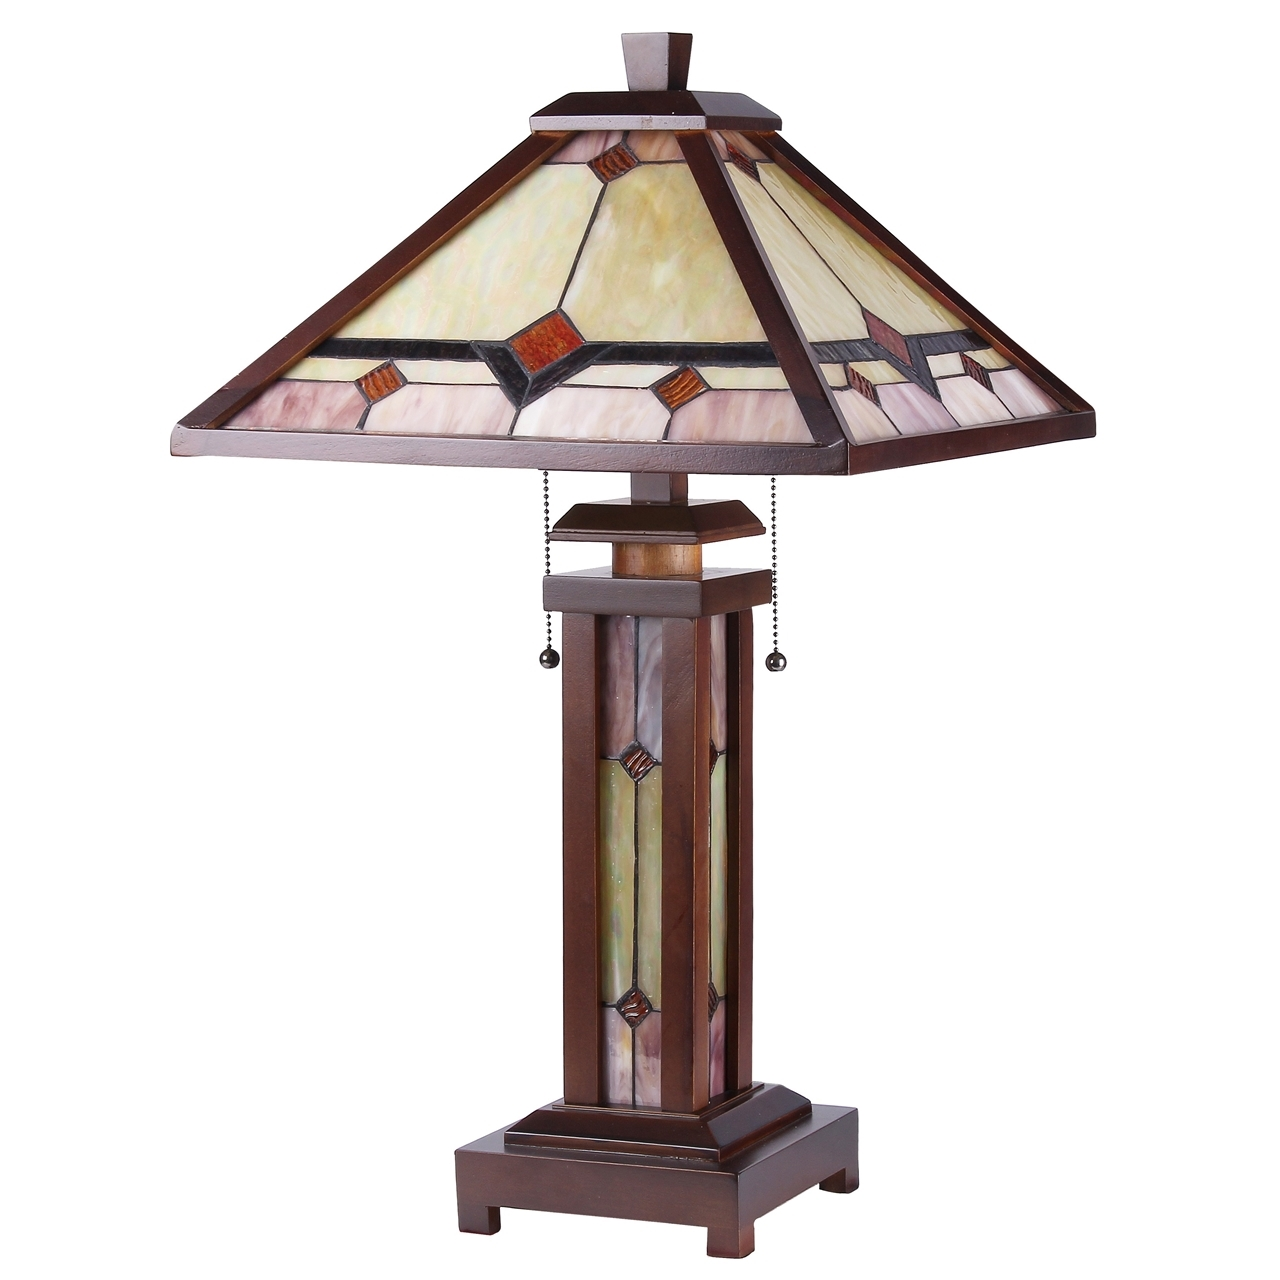 Chloe lighting inc tiffany lamp tiffany lamps tiffany style chloe lighting kay tiffany style mission 3 light double lit wooden table lamp geotapseo Choice Image